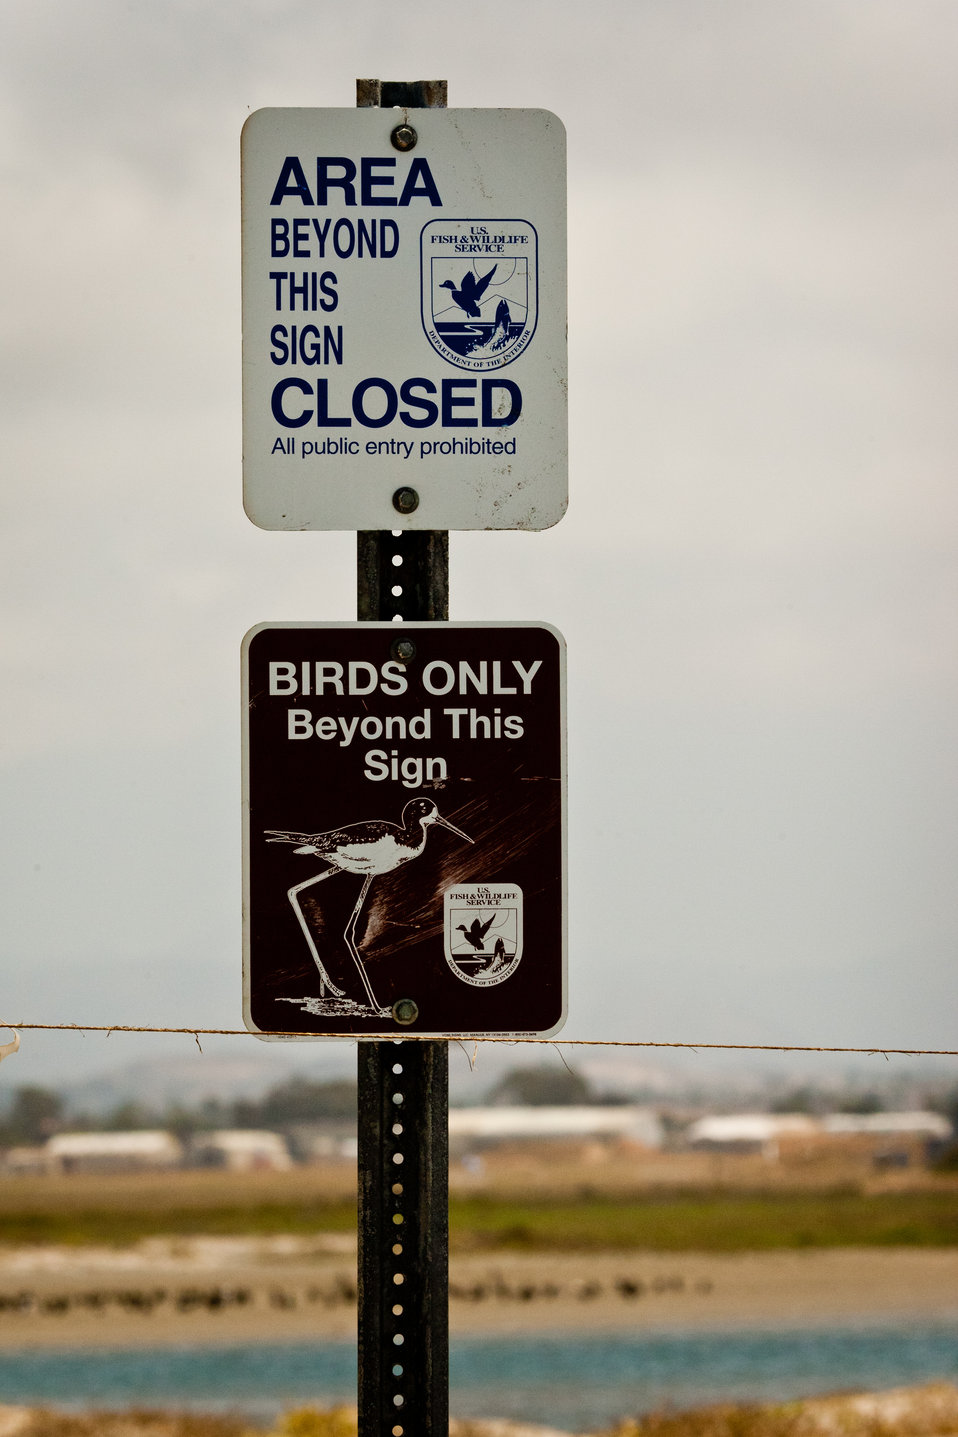 Birds only!